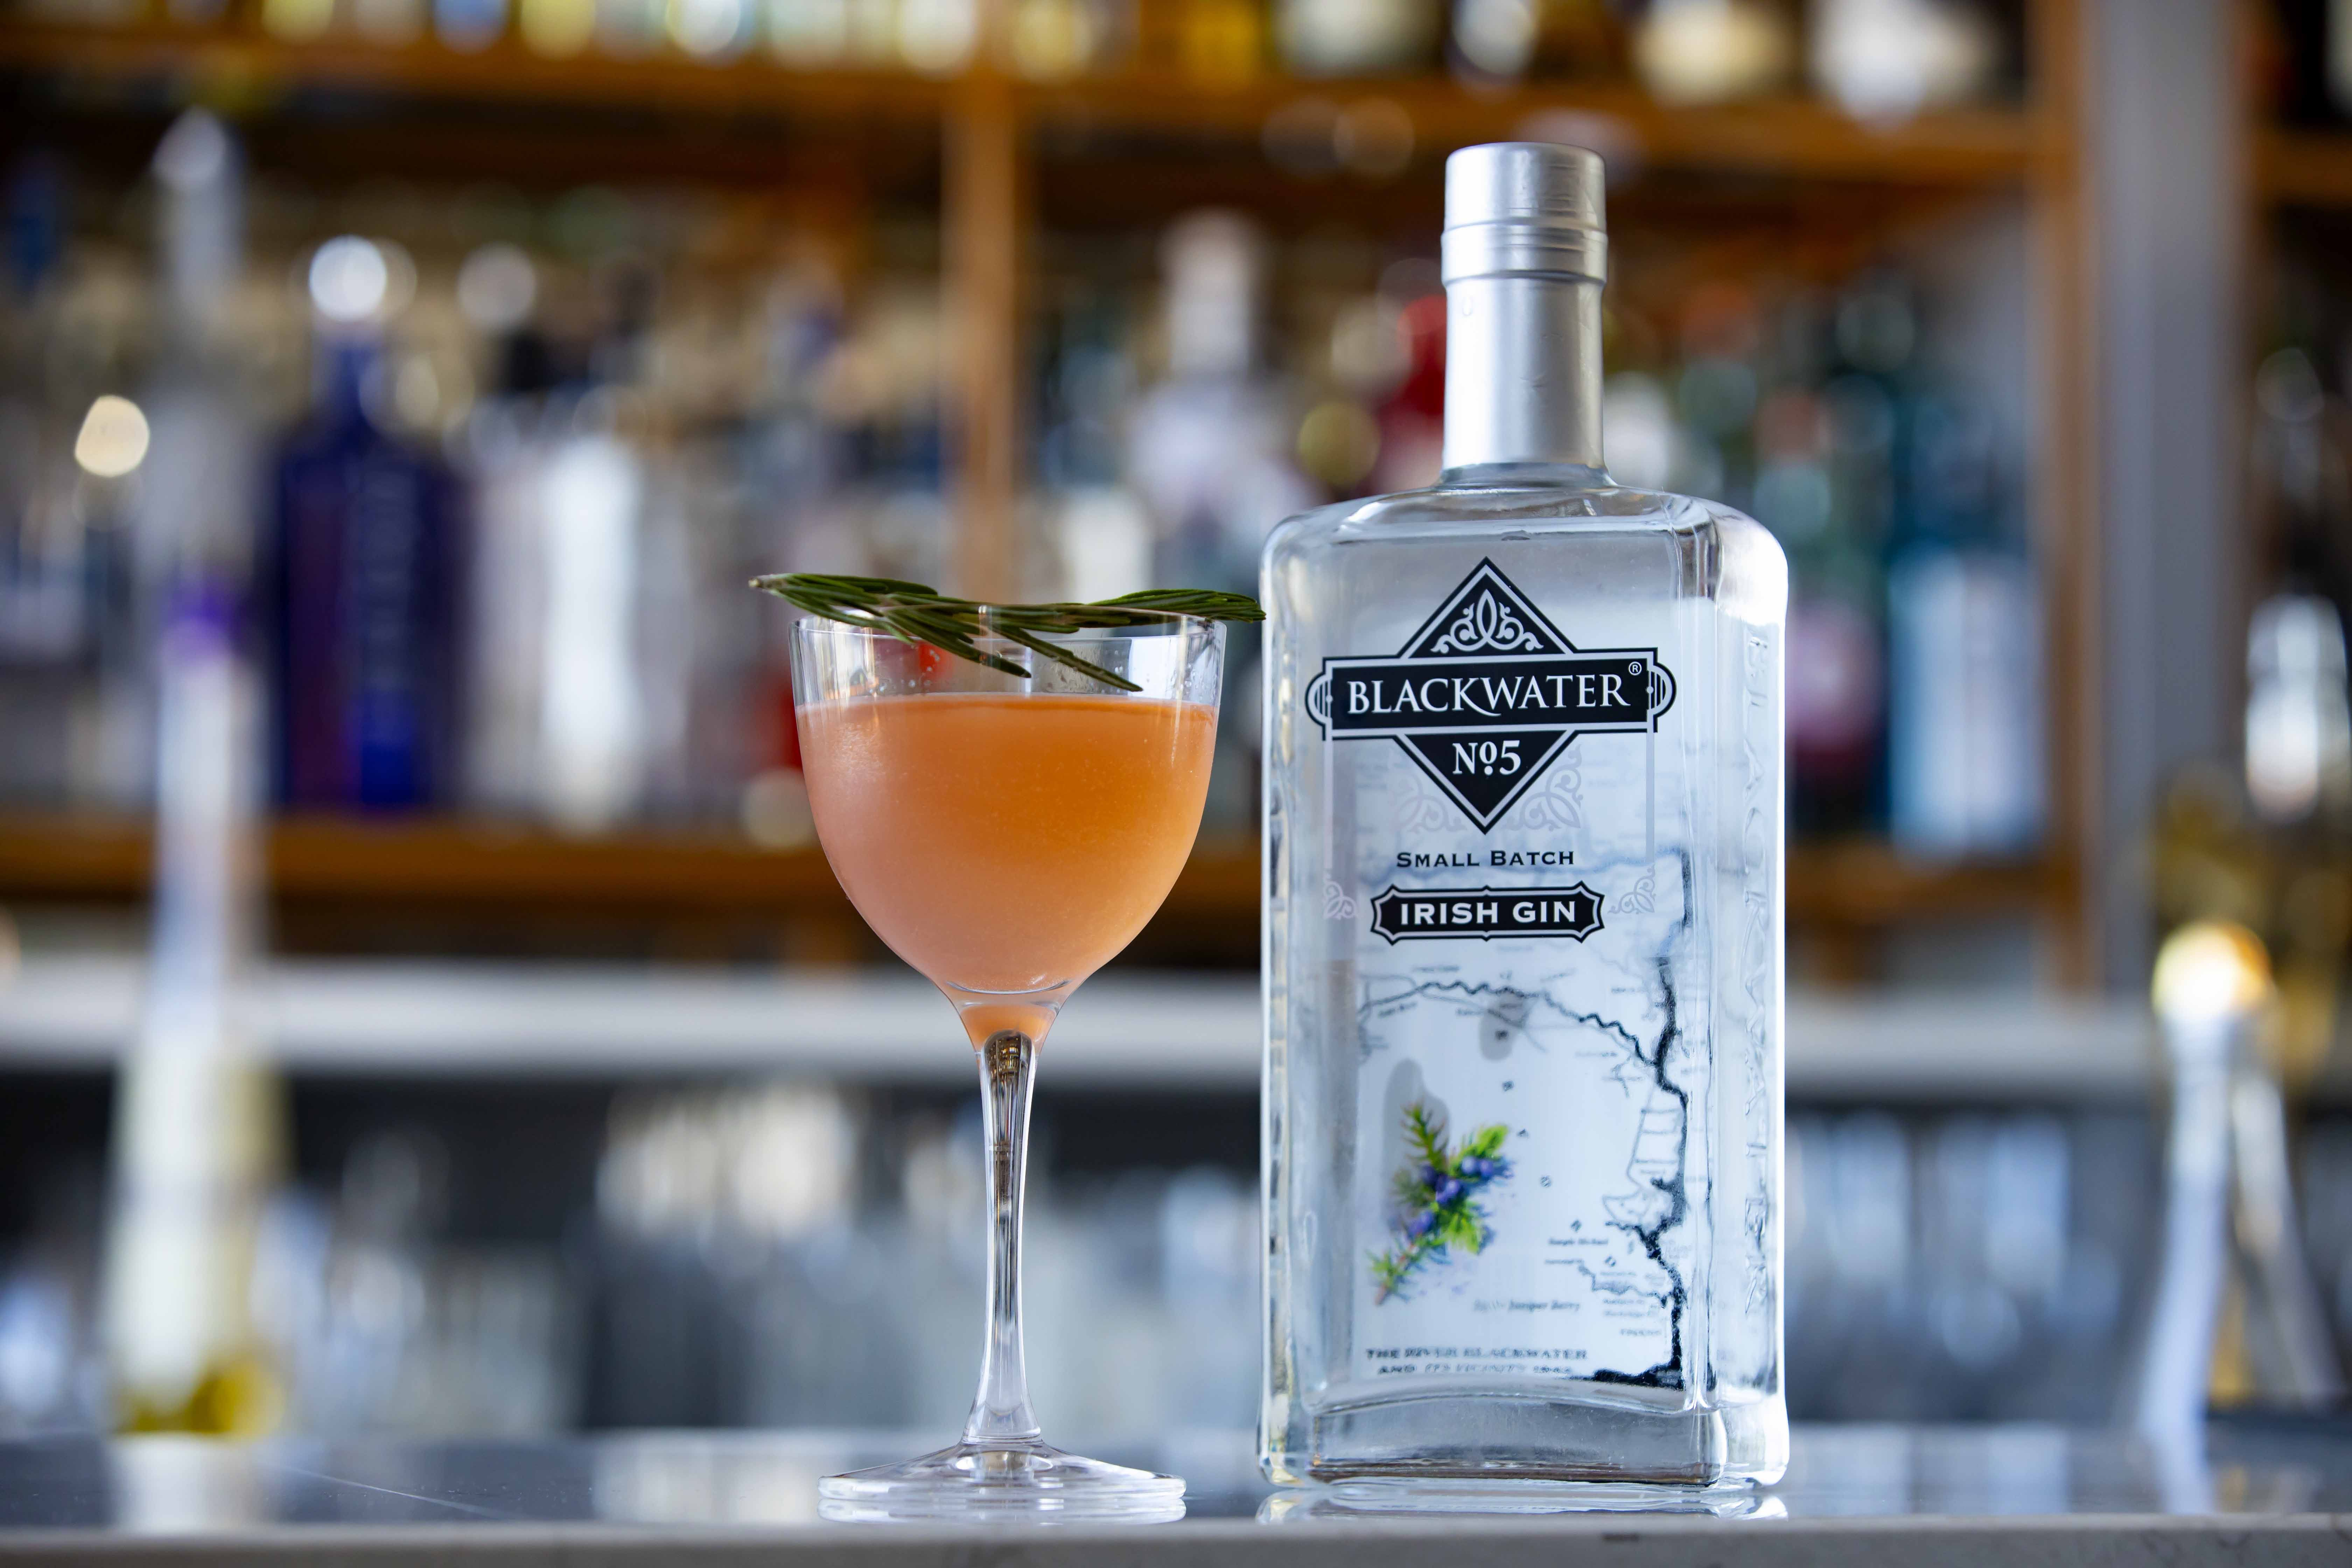 The bespoke cocktail featured in the Taste of the Festival meal experience